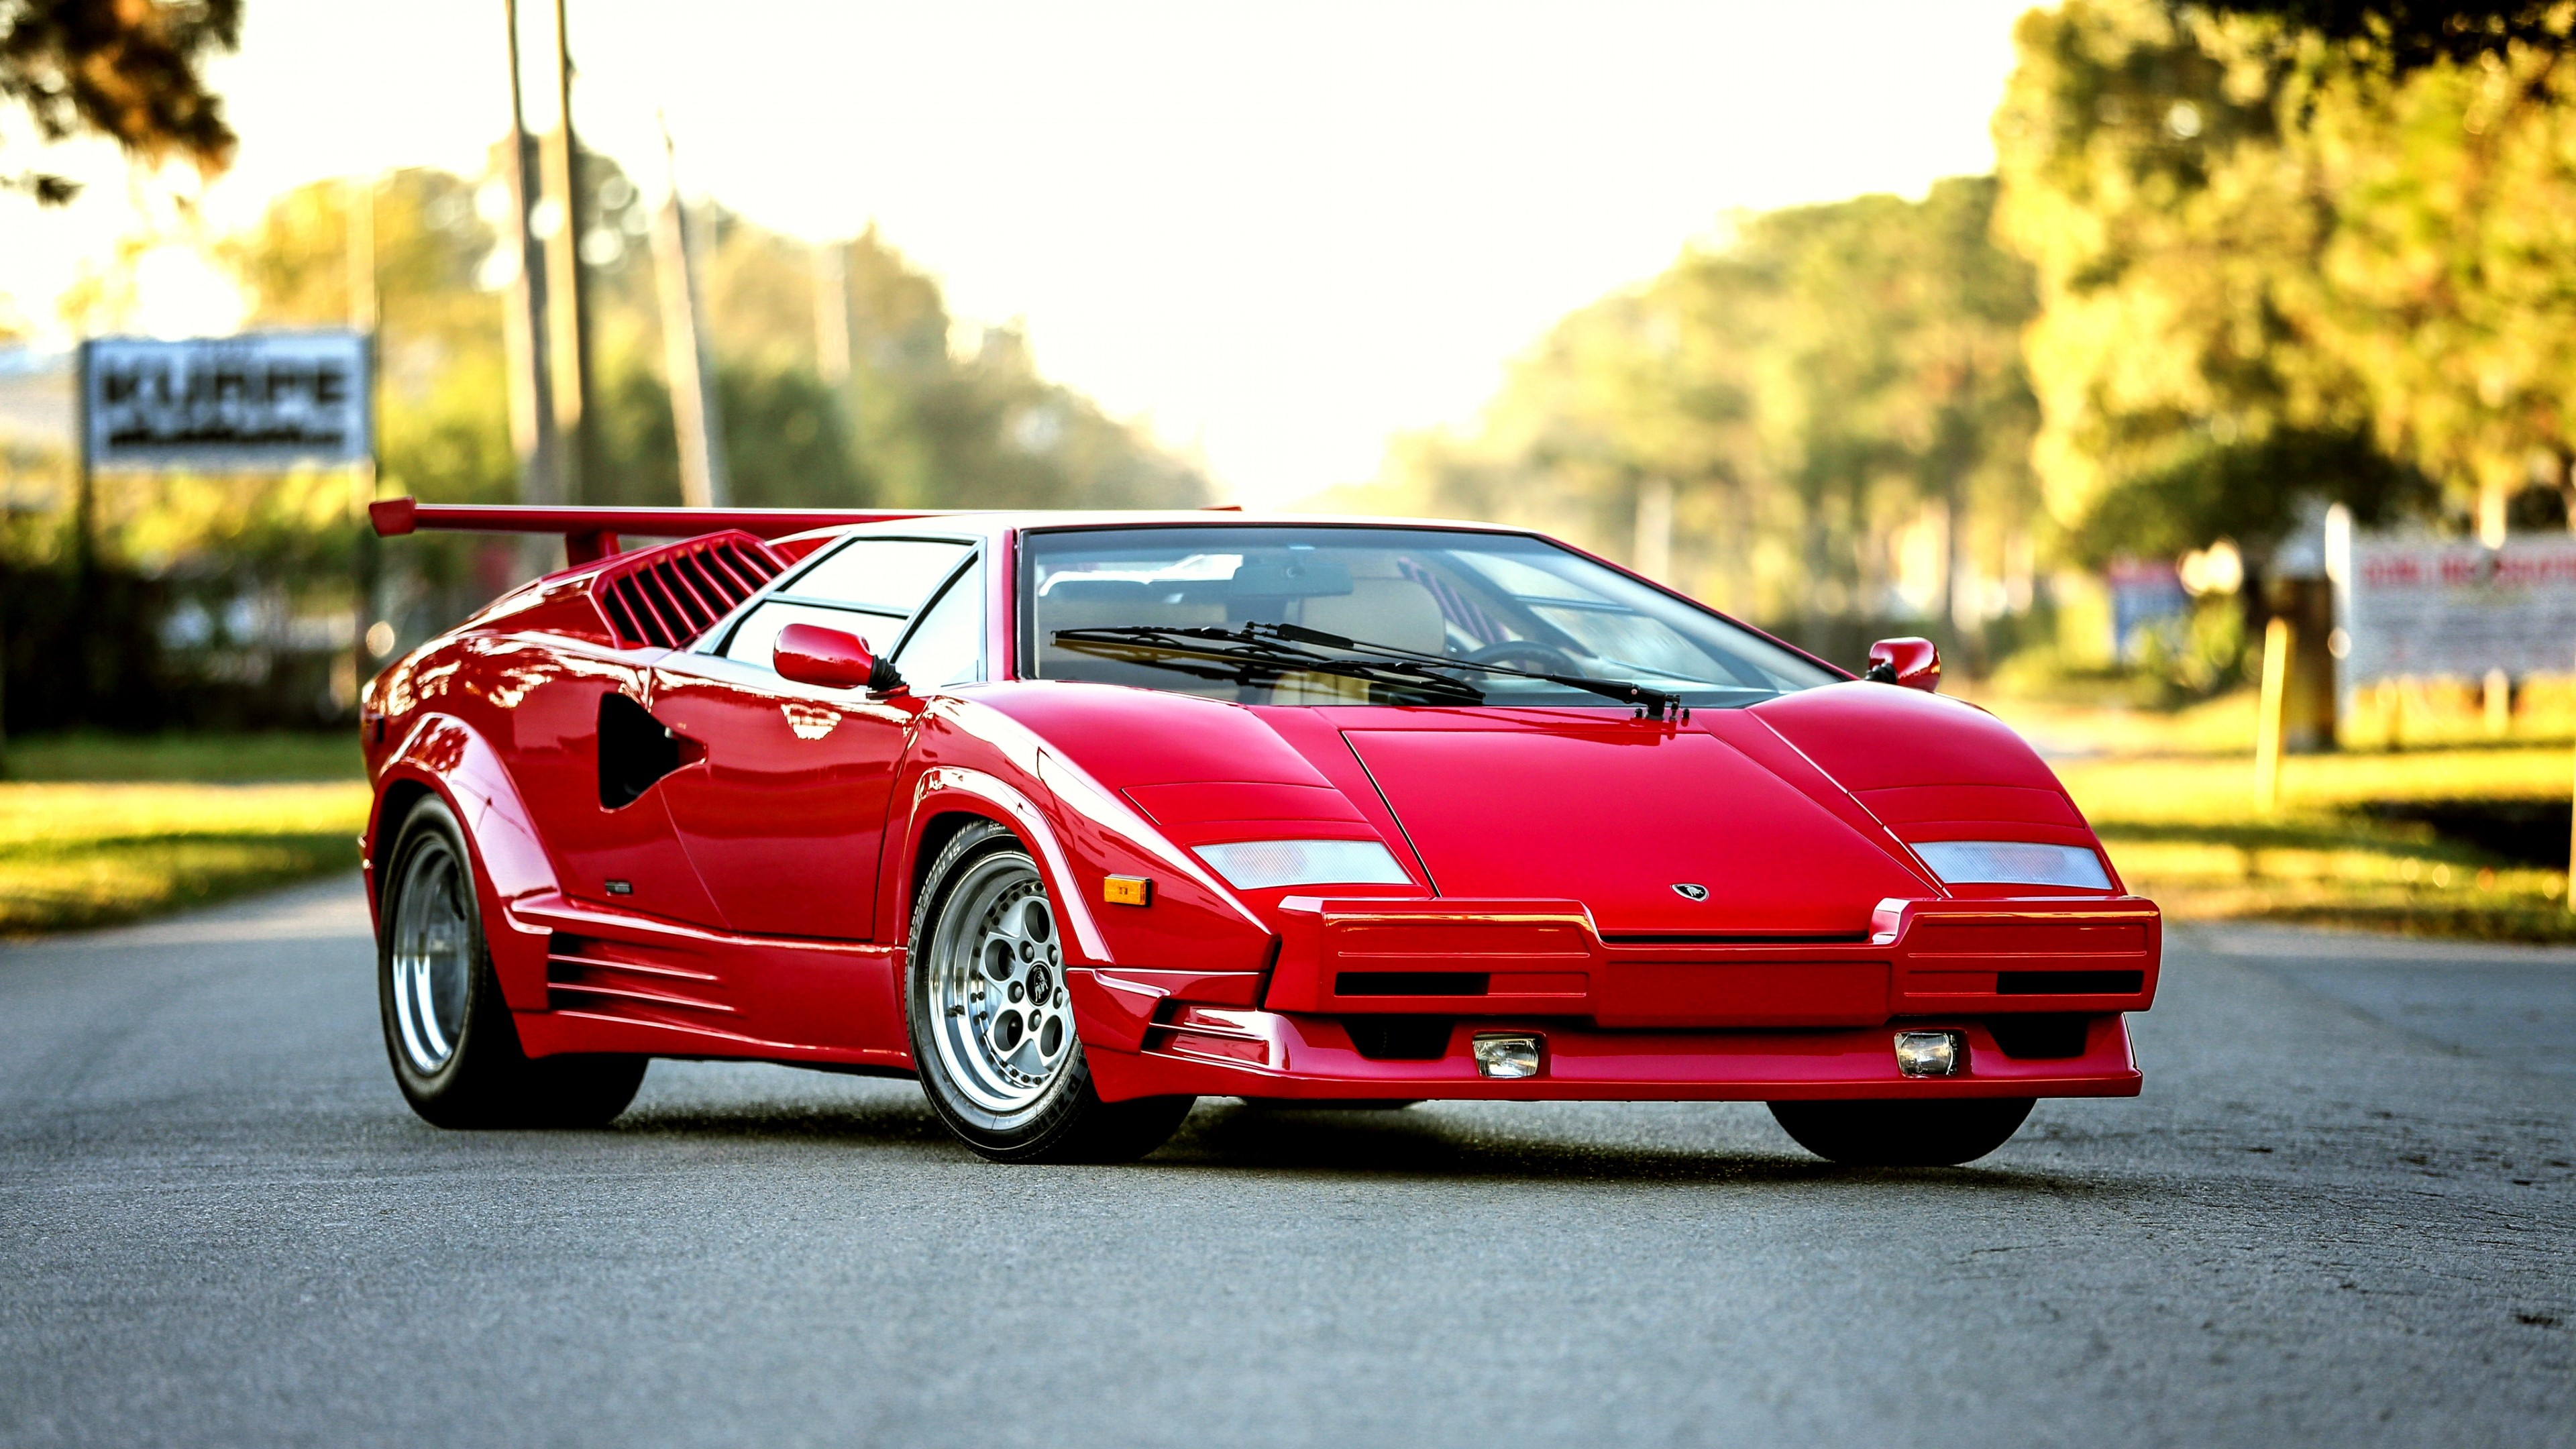 Wallpaper Bertone Lamborghini Countach Rojo Images